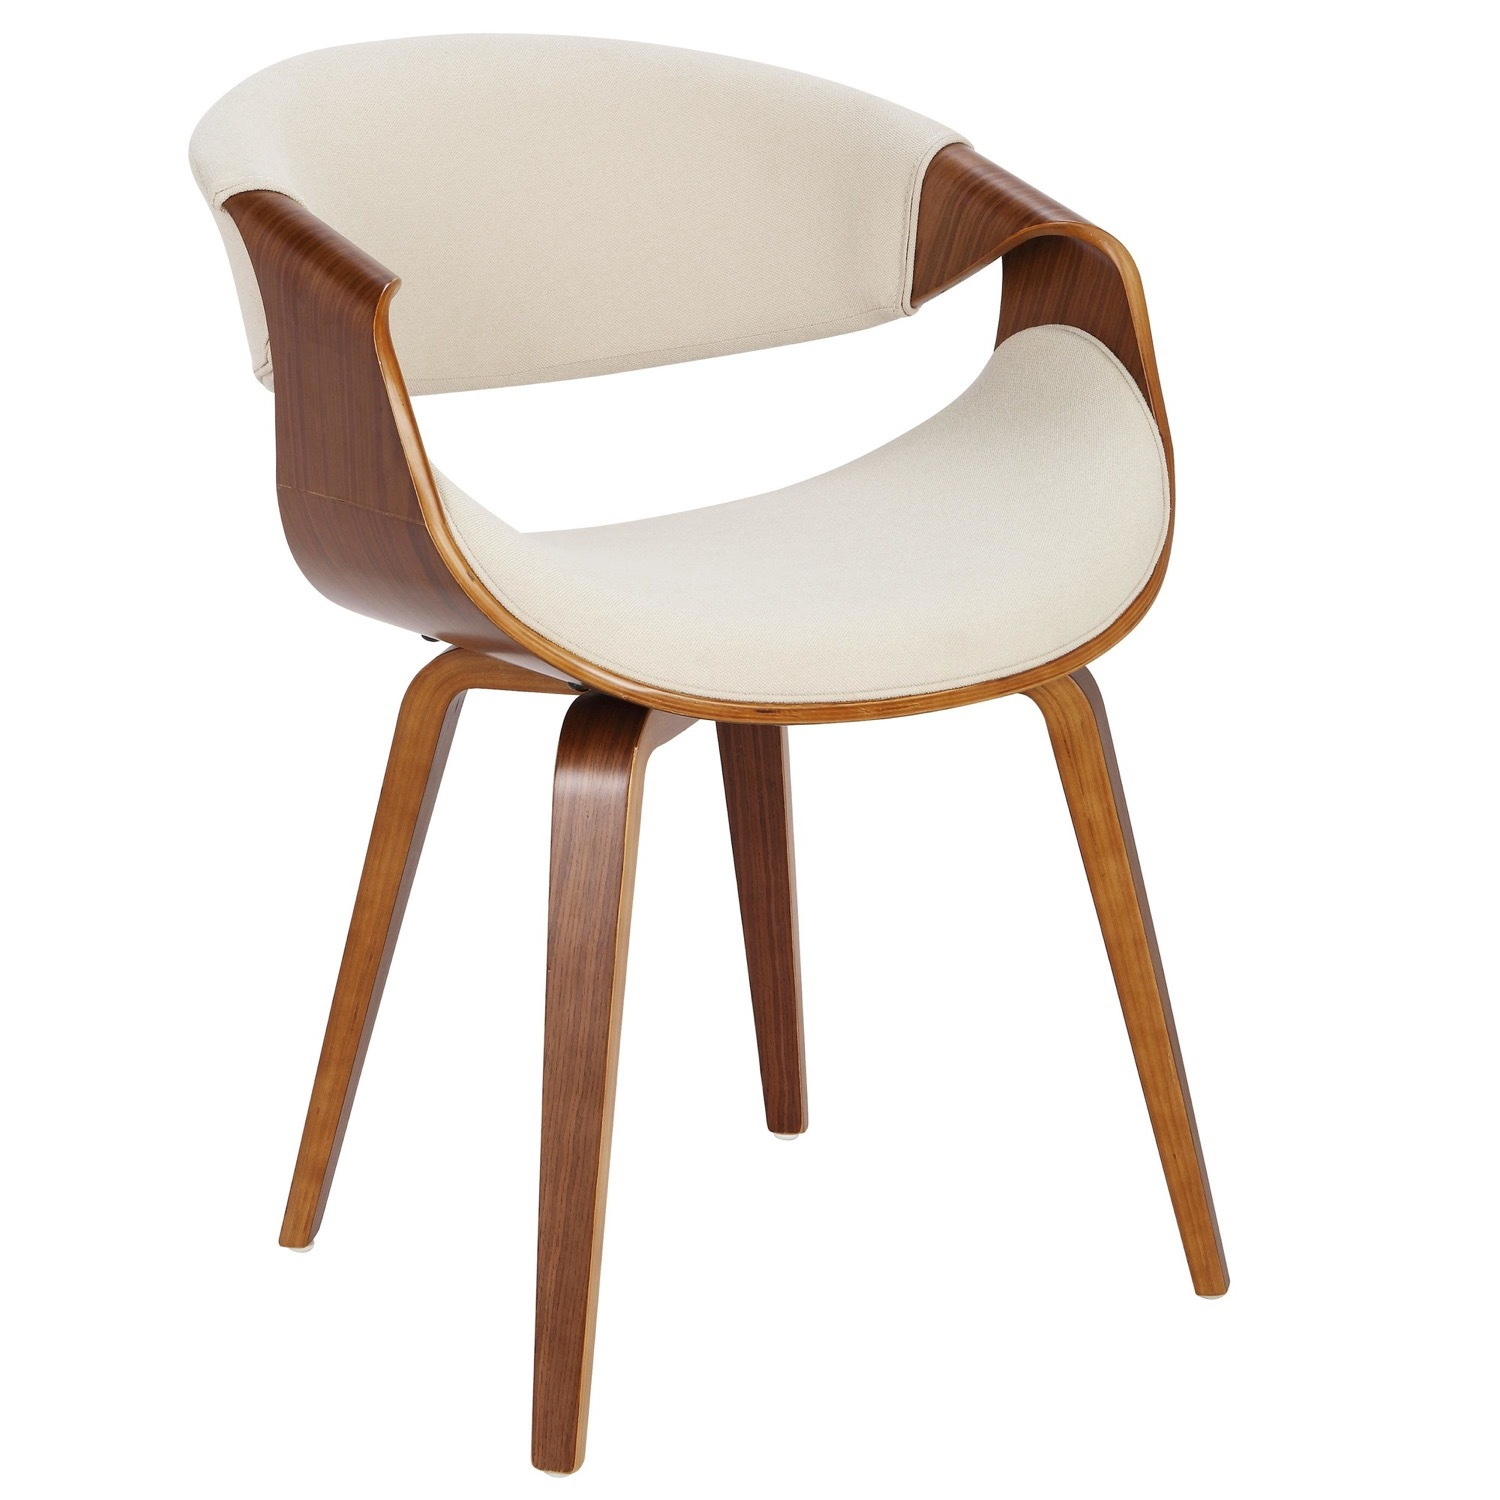 Mid Century Modern Dining Chairs - image-0